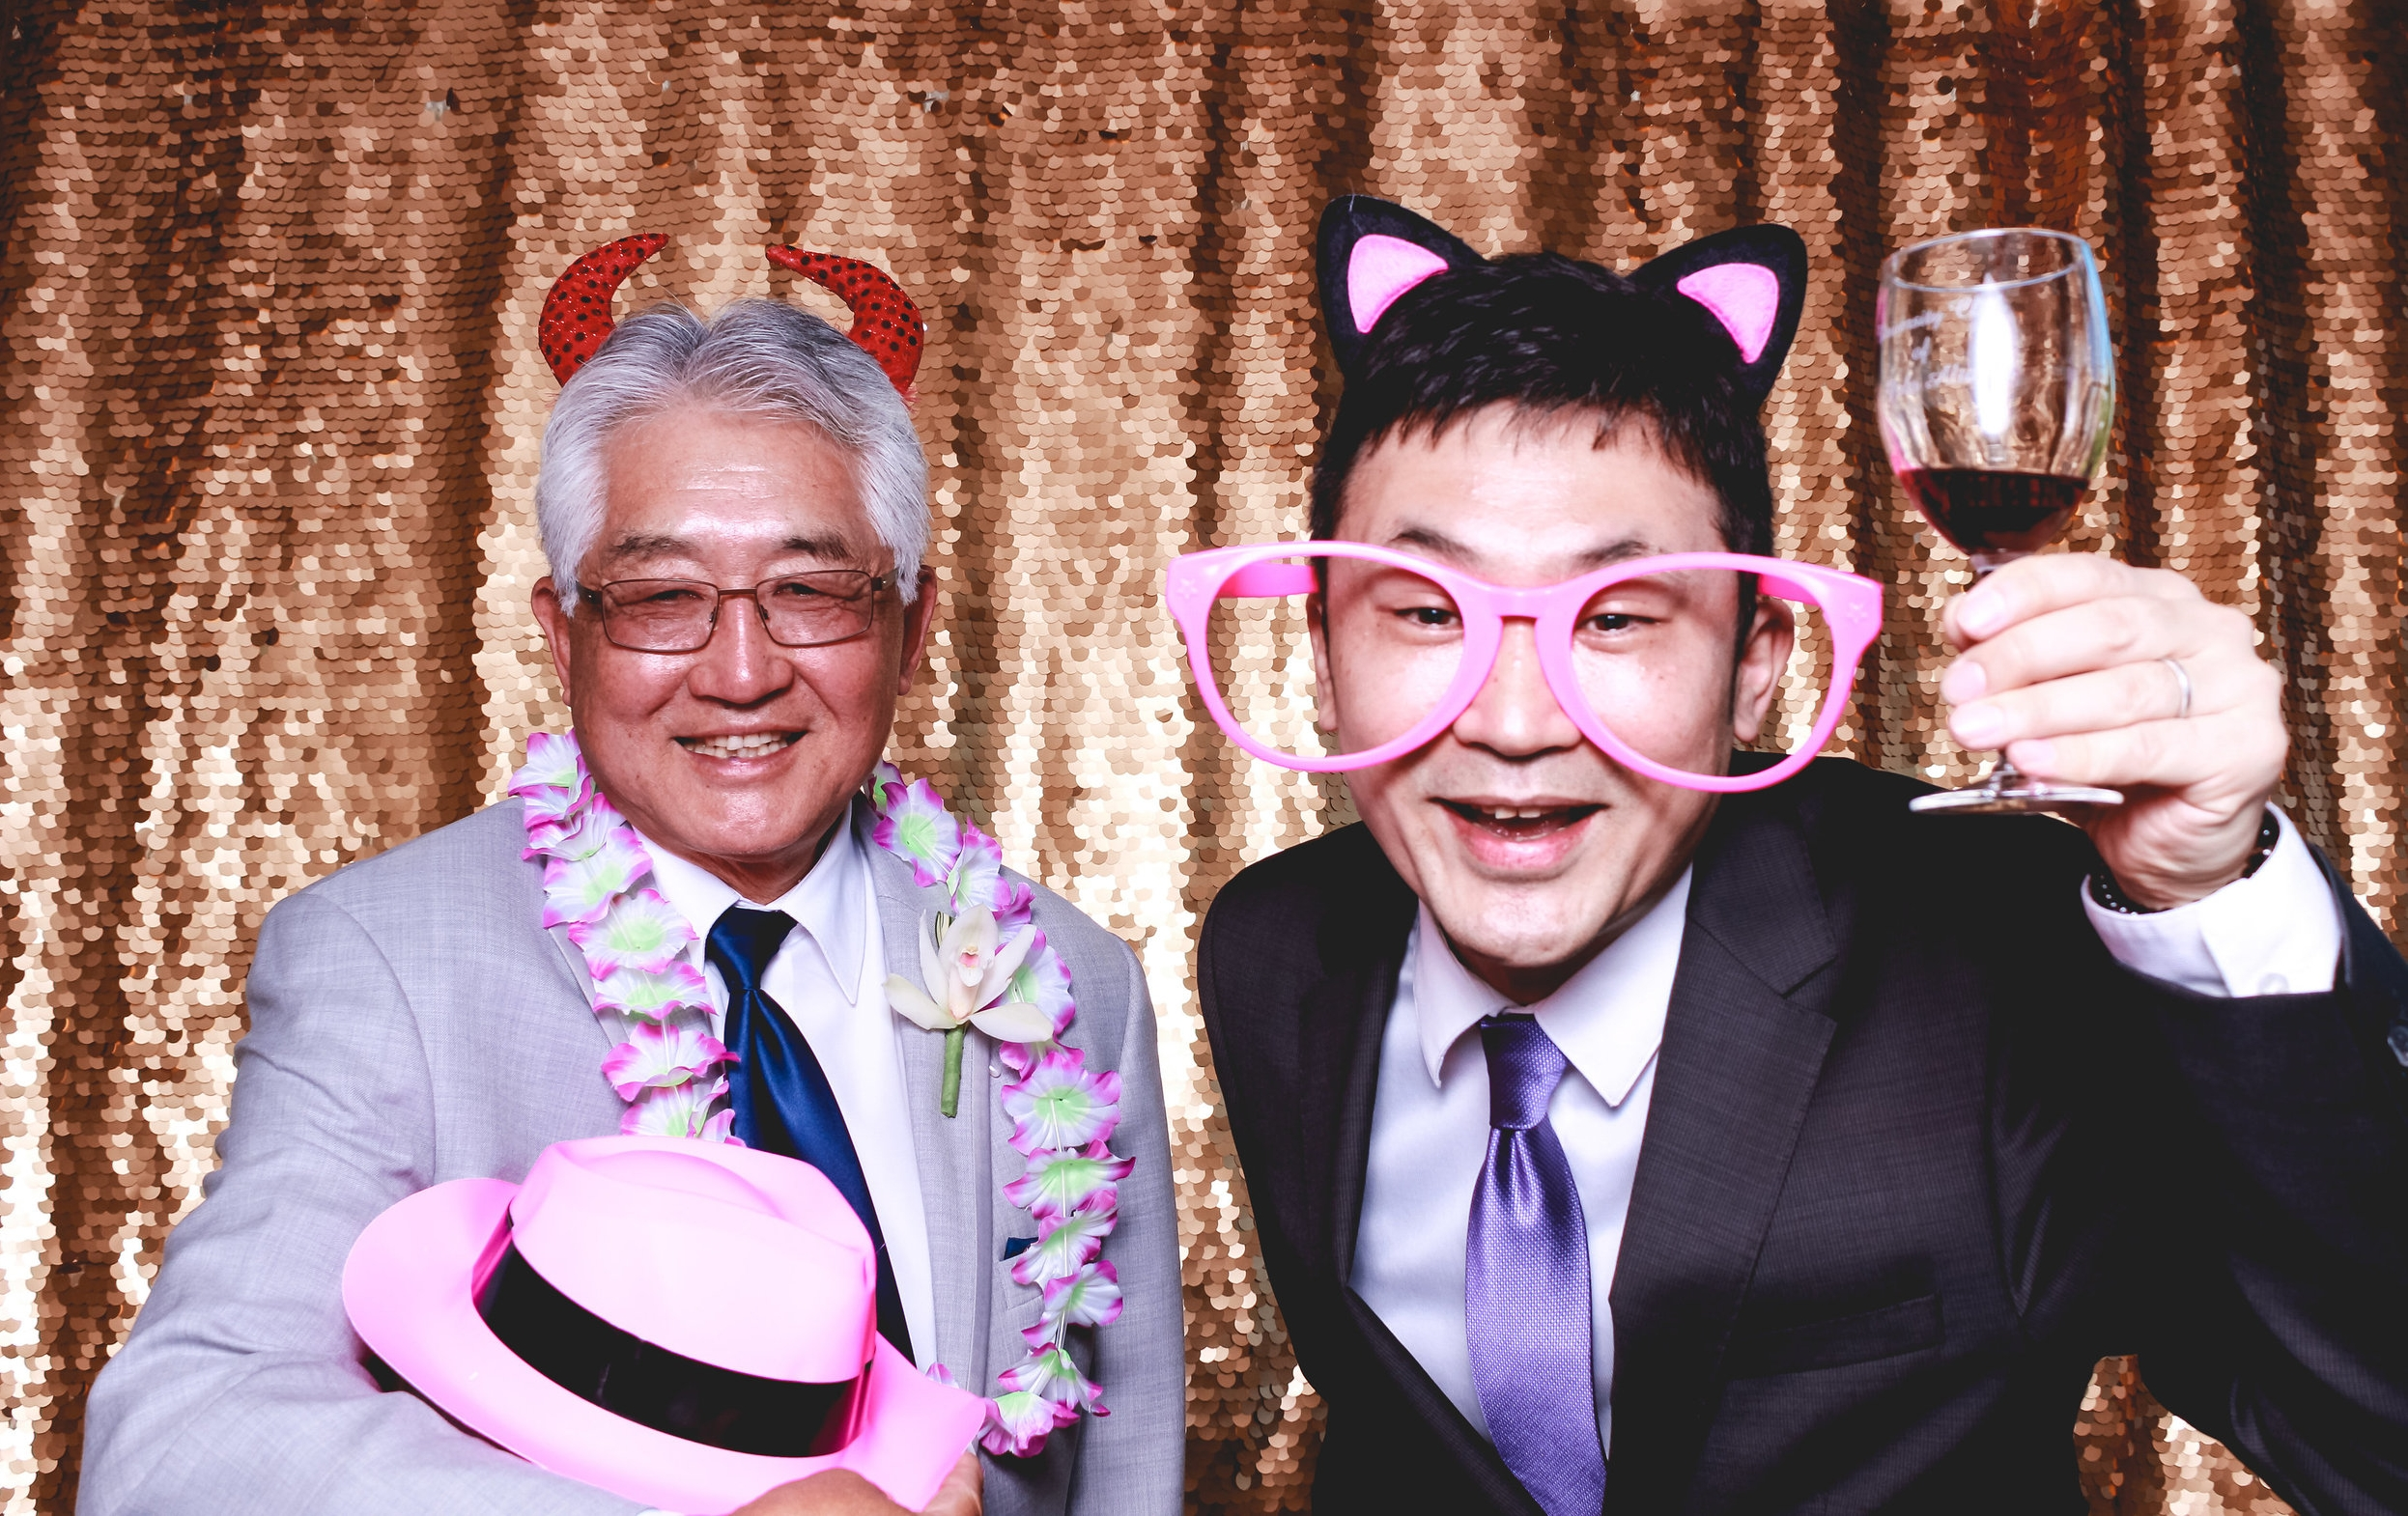 kelly-and-aaron-photobooth-13.jpg